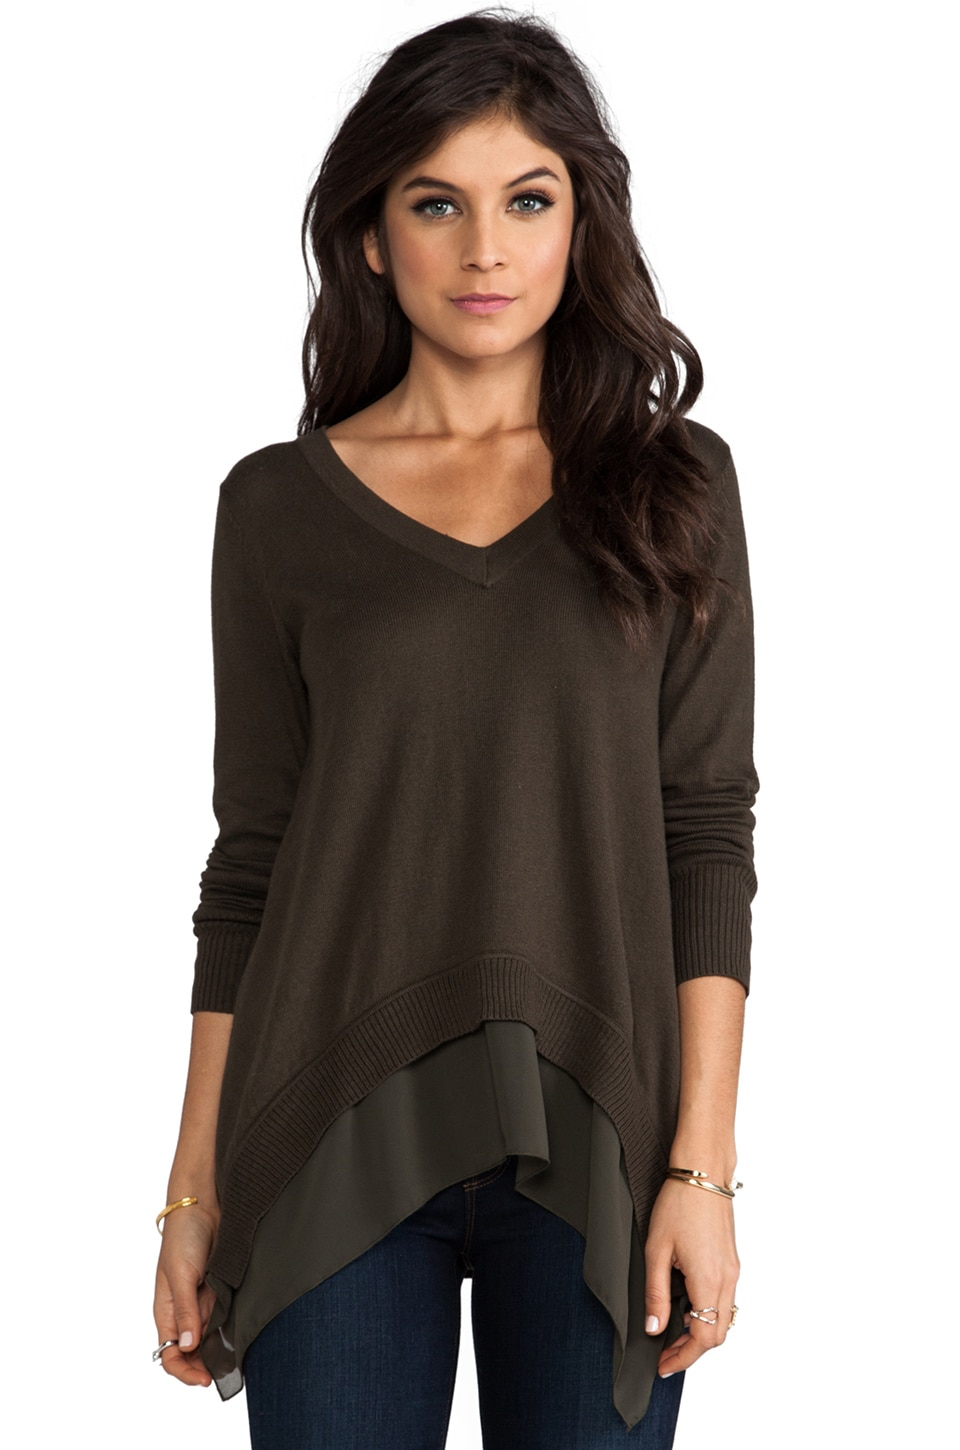 Central Park West V Neck Marblehead Sweater in Olive